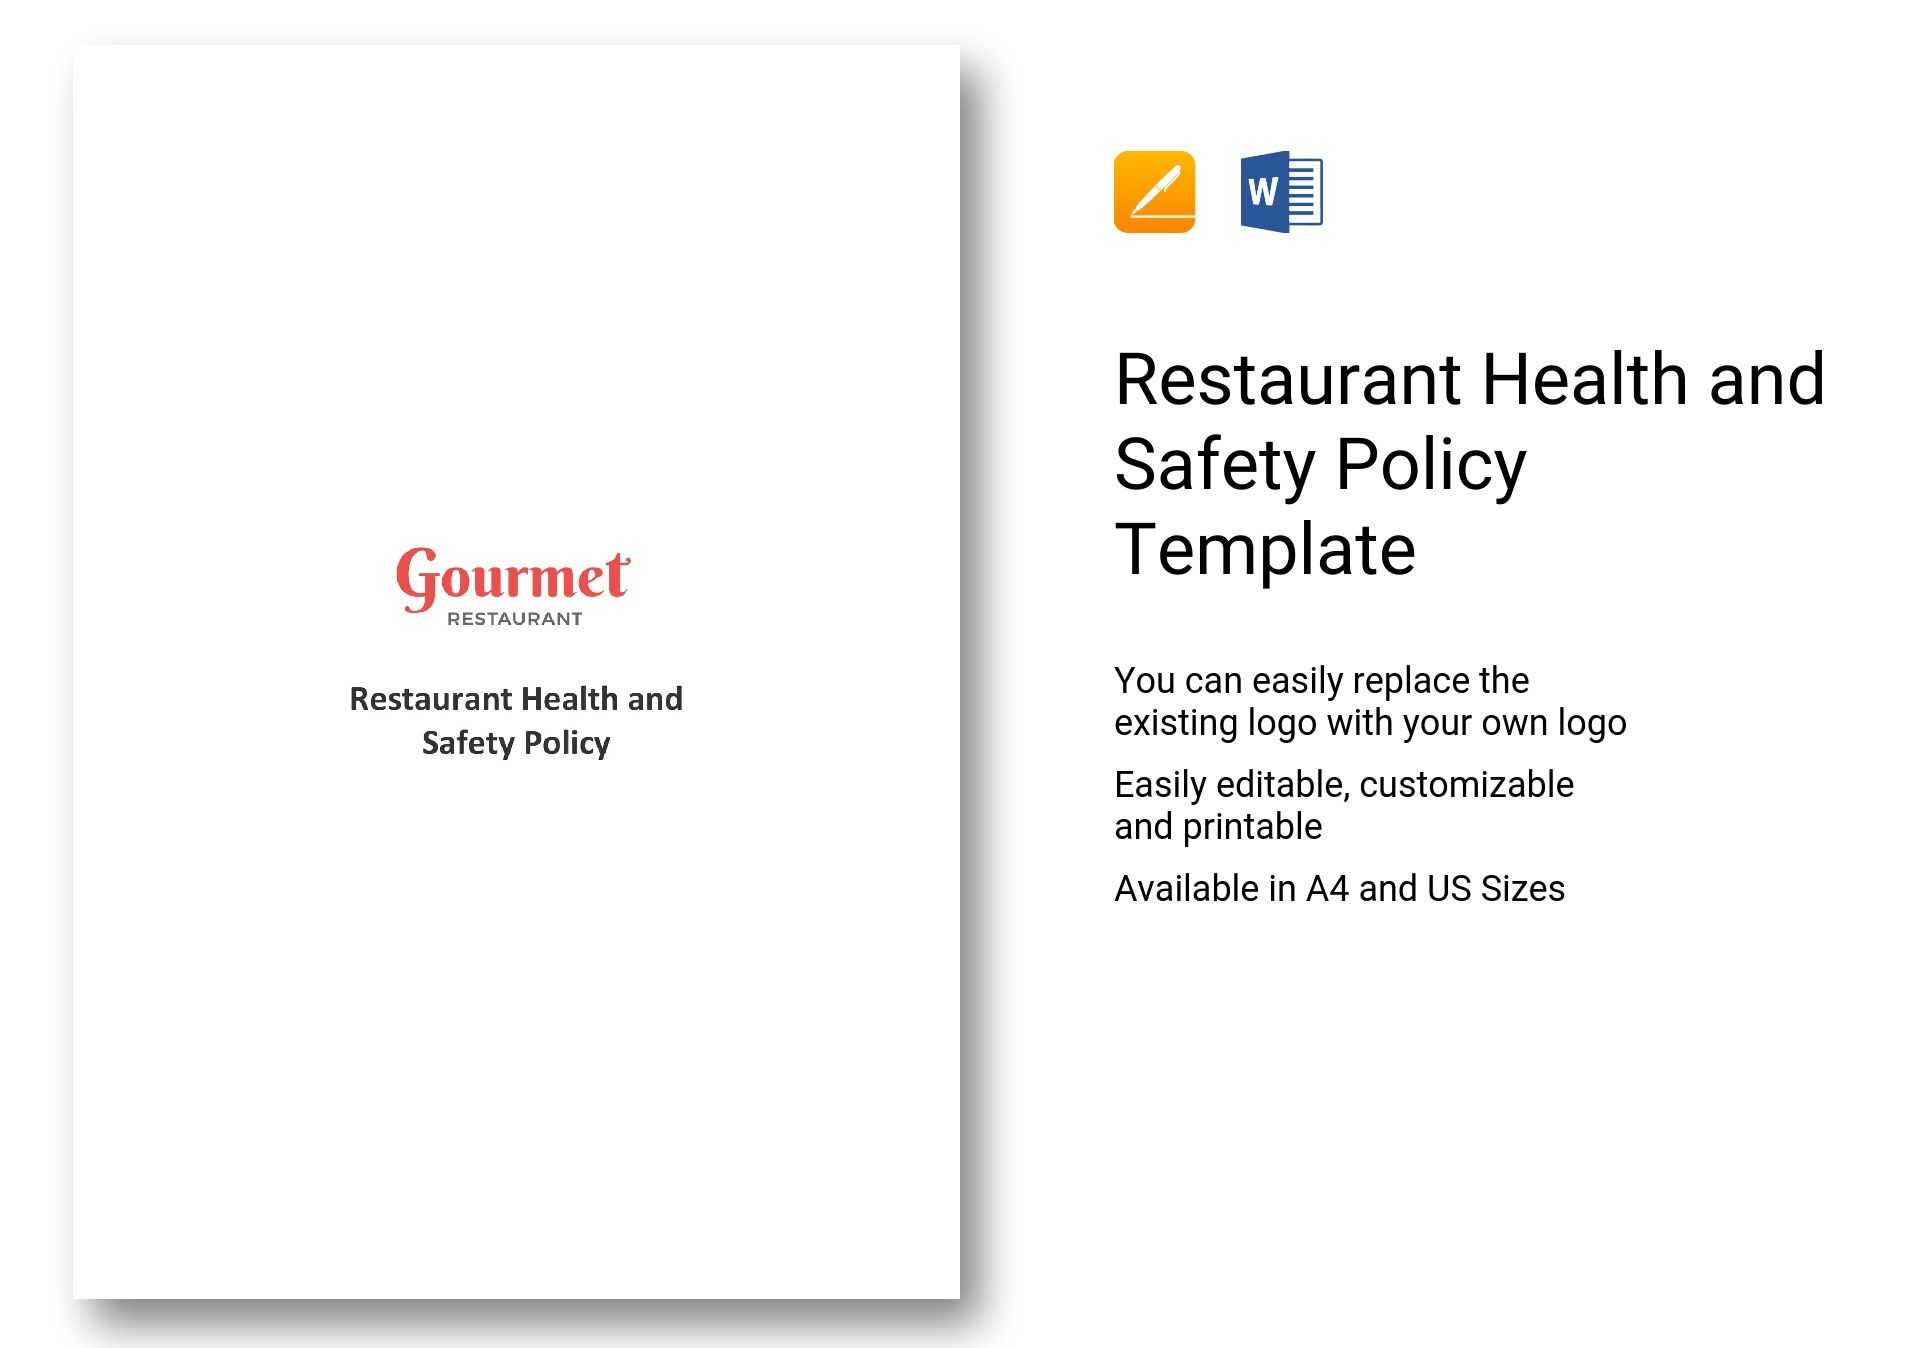 Restaurant Health and Safety Policy Template in Word ...